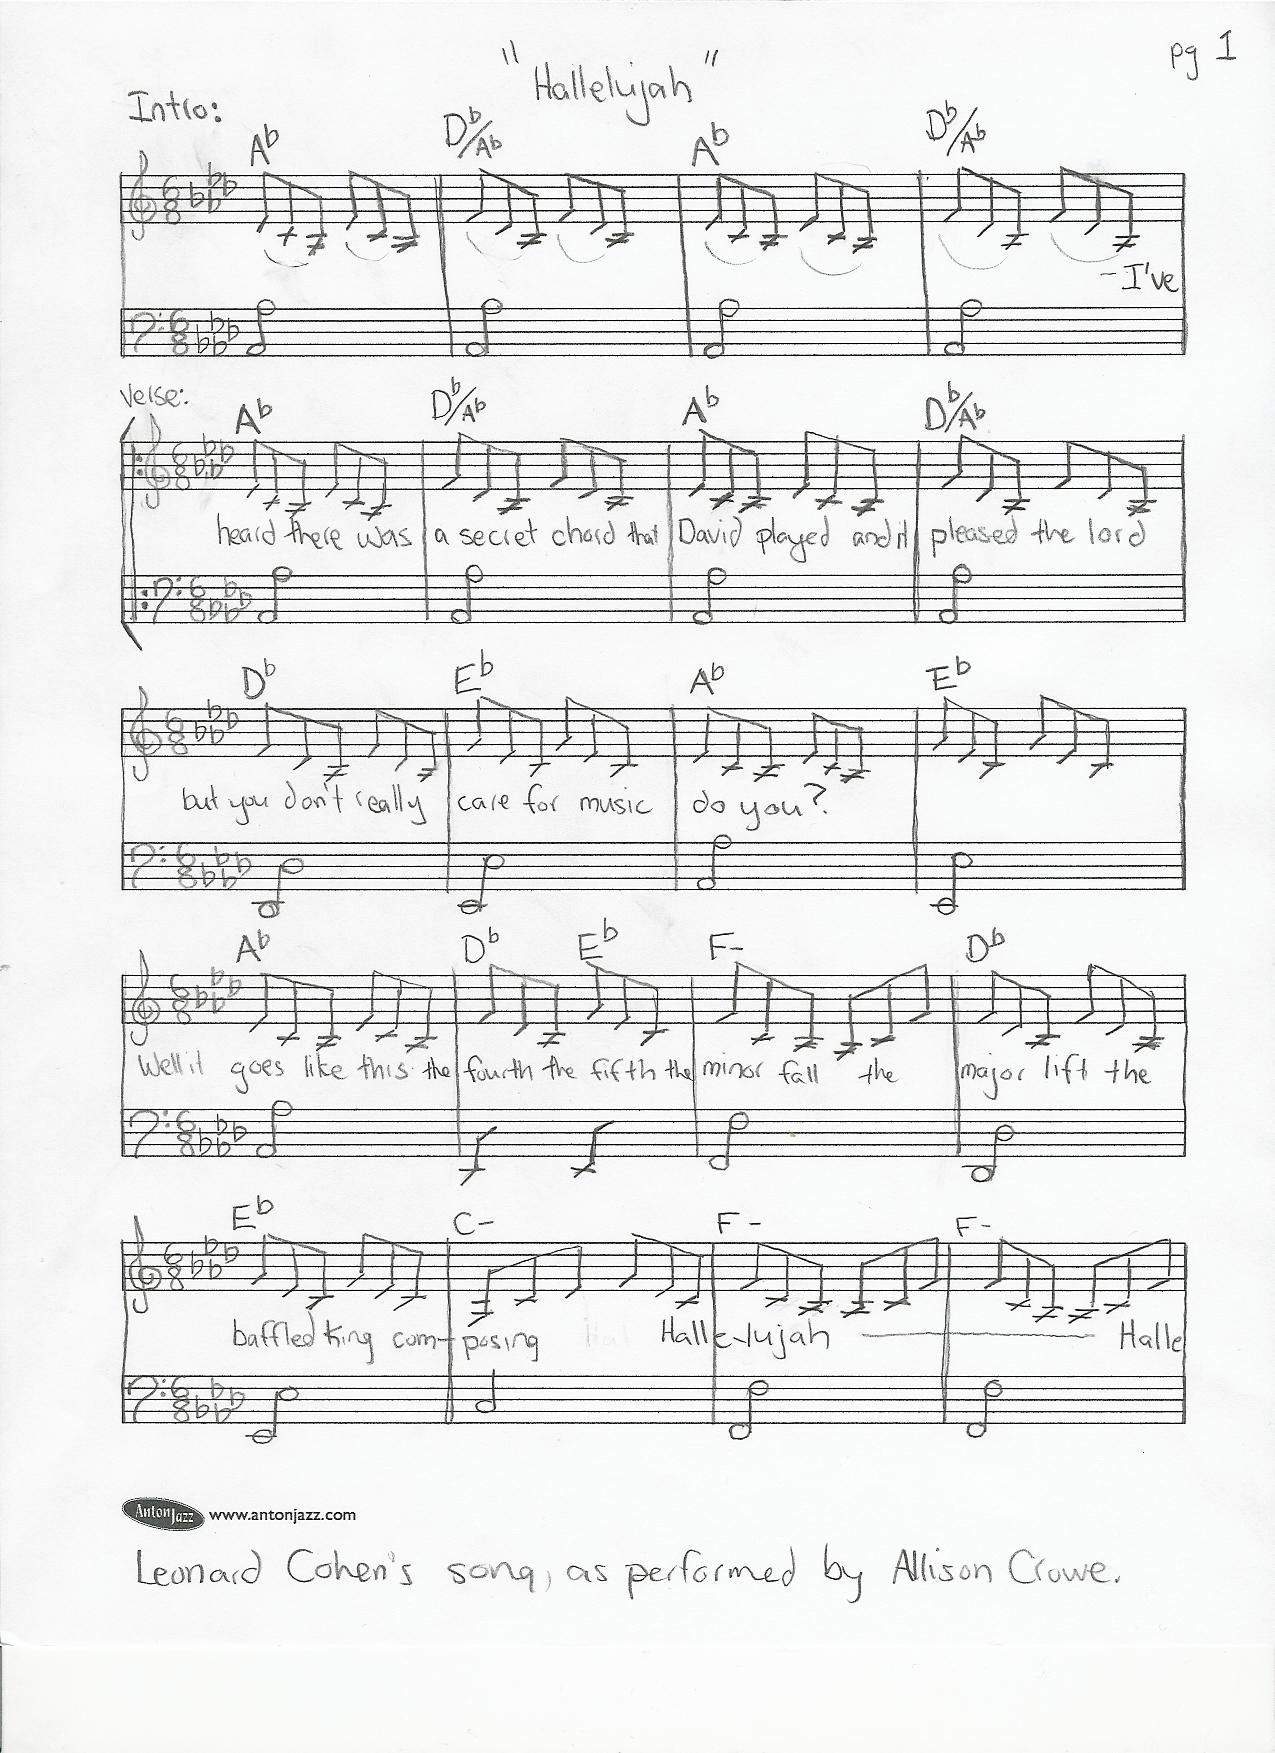 How to make the whole world sing hallelujah american songwriter hallelujahcohencrowetranscription1 hexwebz Choice Image